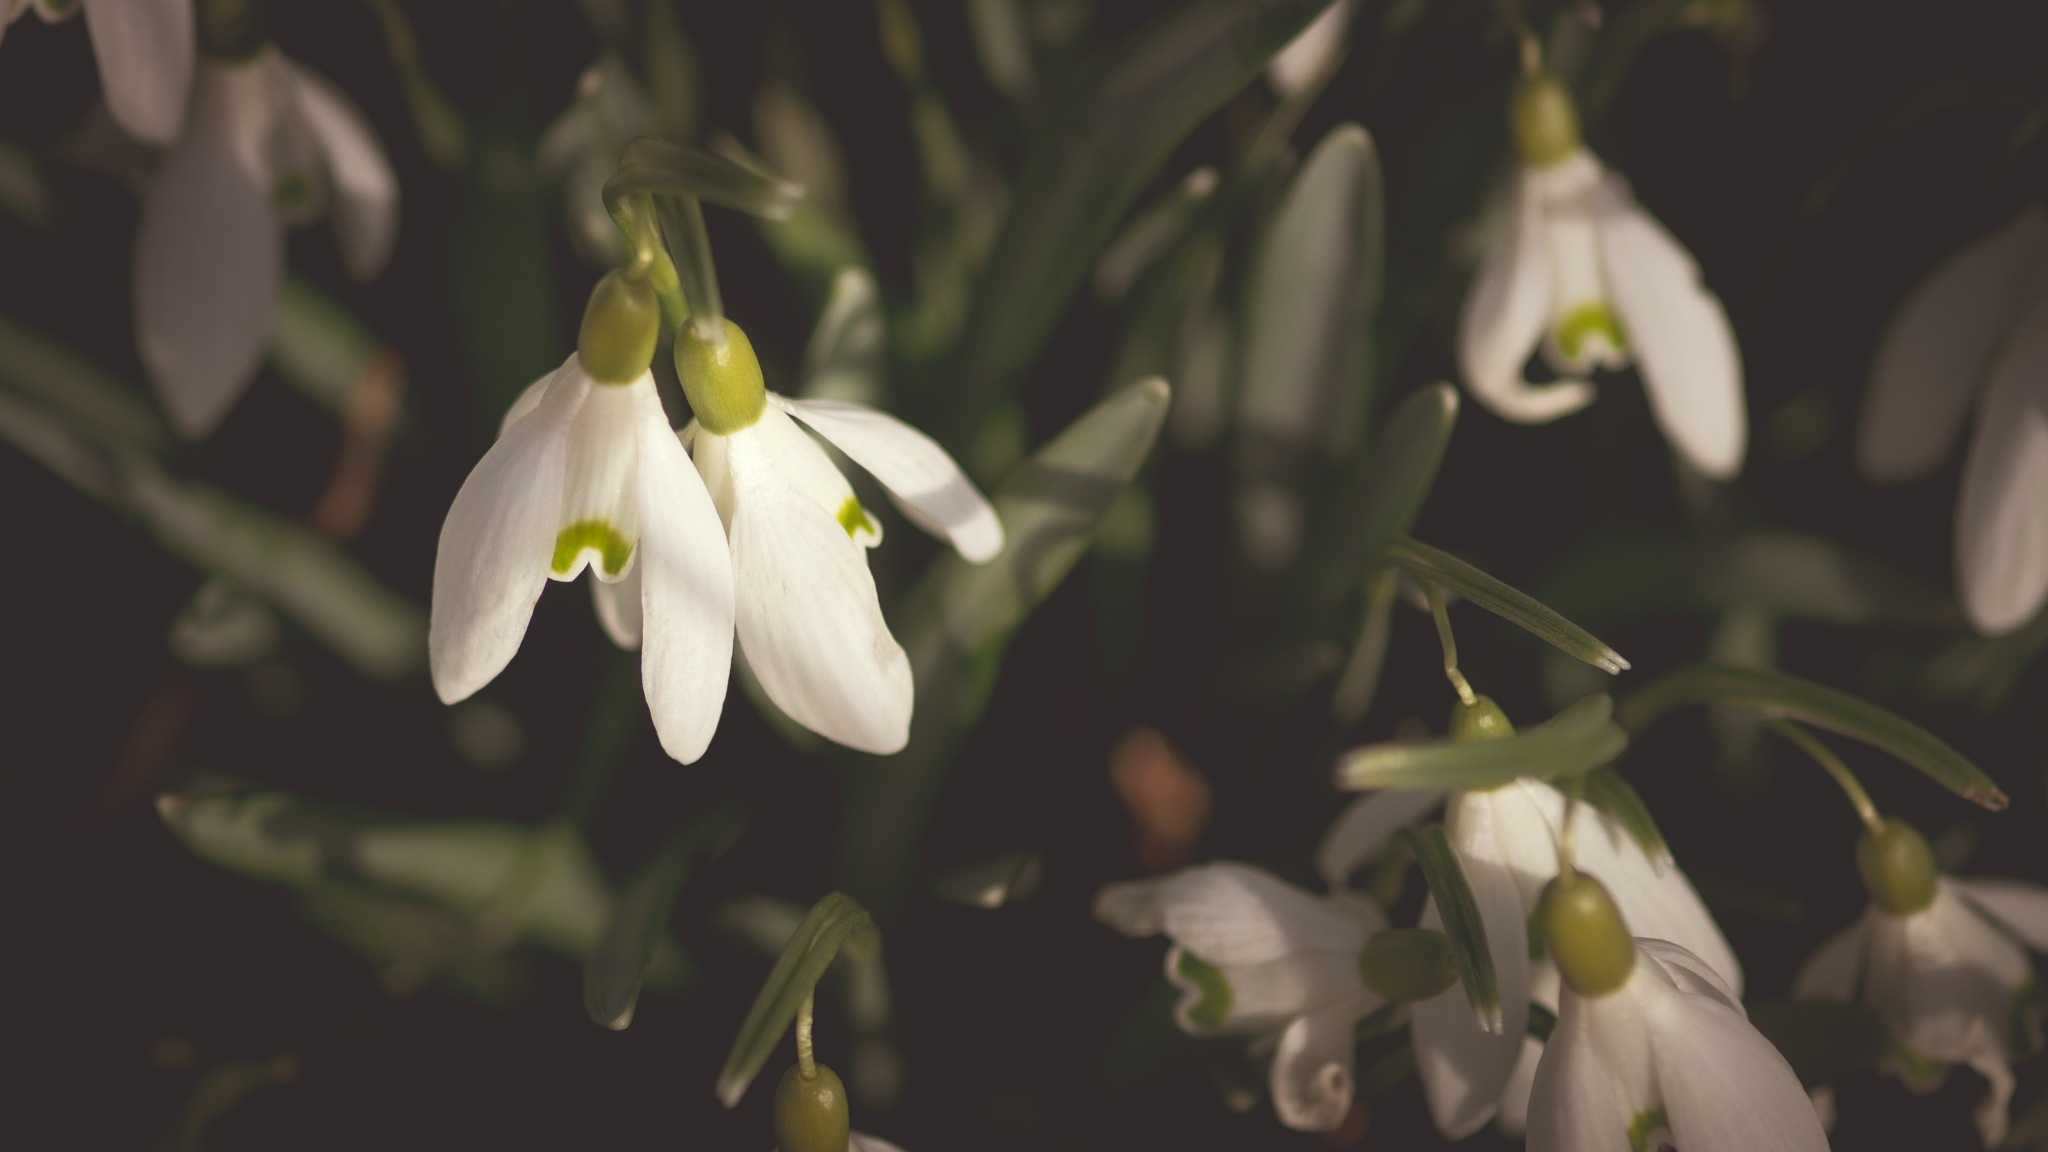 Snow drops by RoonZ